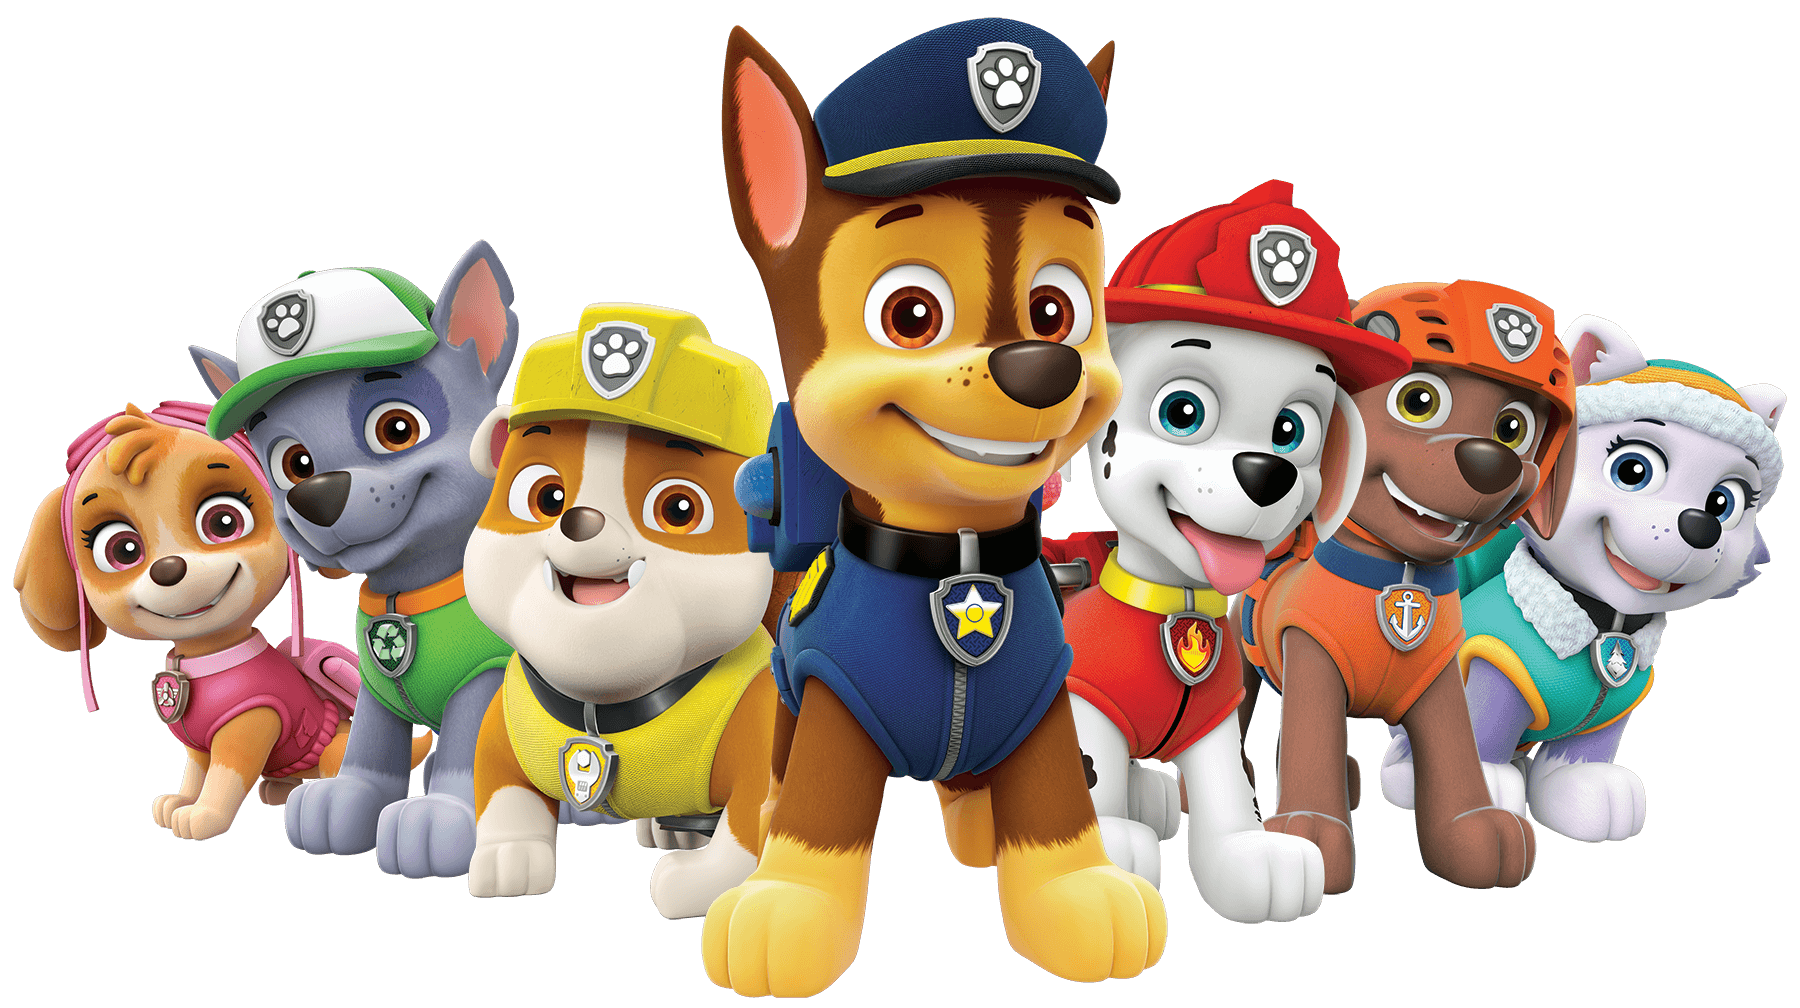 Paw patrol clip art clipart library download Free Paw Patrol Clipart at GetDrawings.com | Free for personal use ... clipart library download